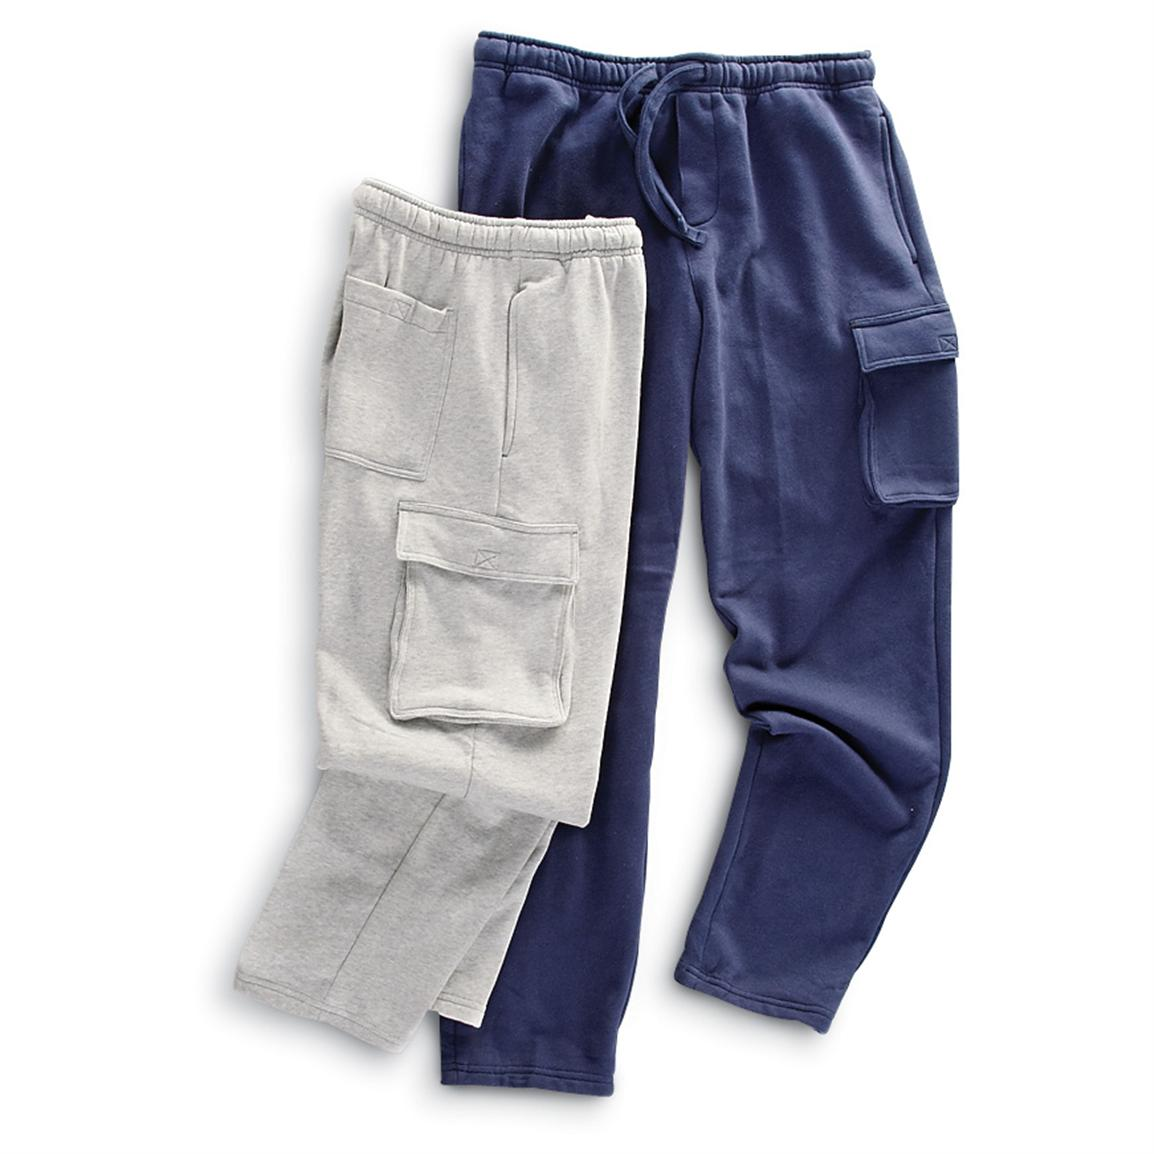 2 Rio Cargo Fleece Pants, 1 Gray / 1 Navy